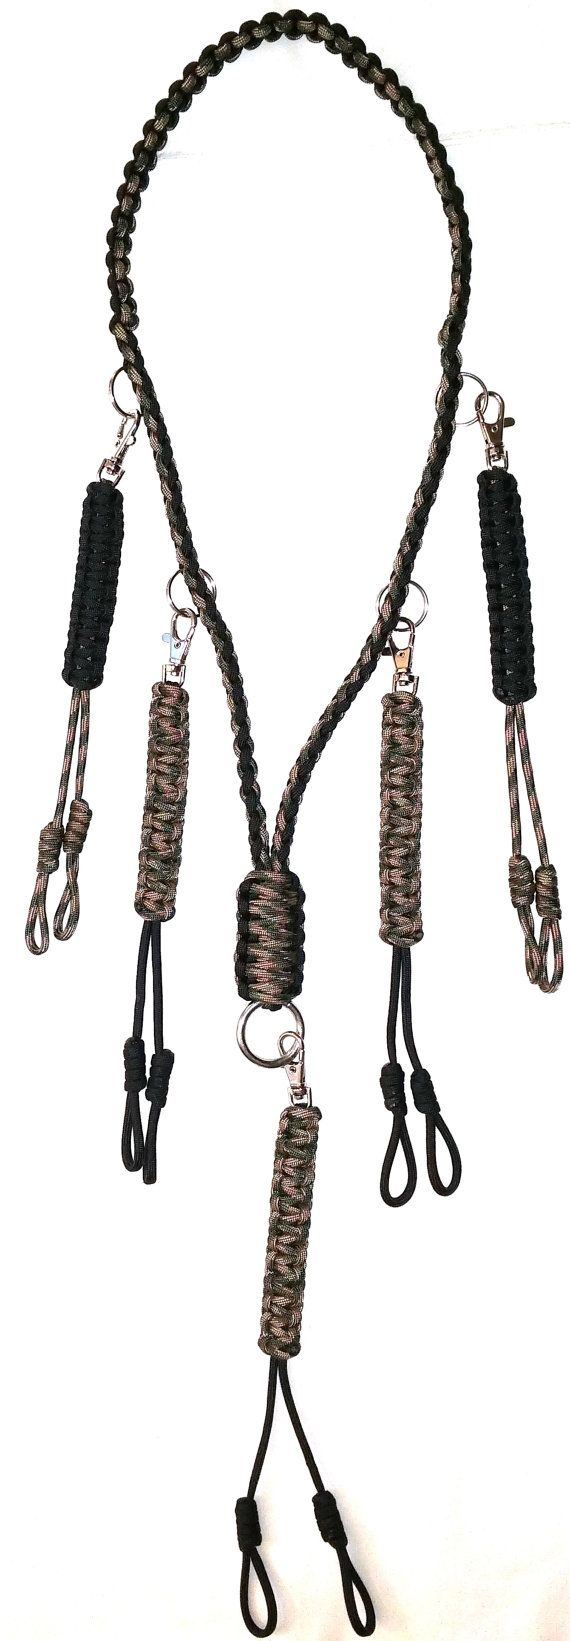 Paracord Duck Call Lanyard by BarrysParacord on Etsy